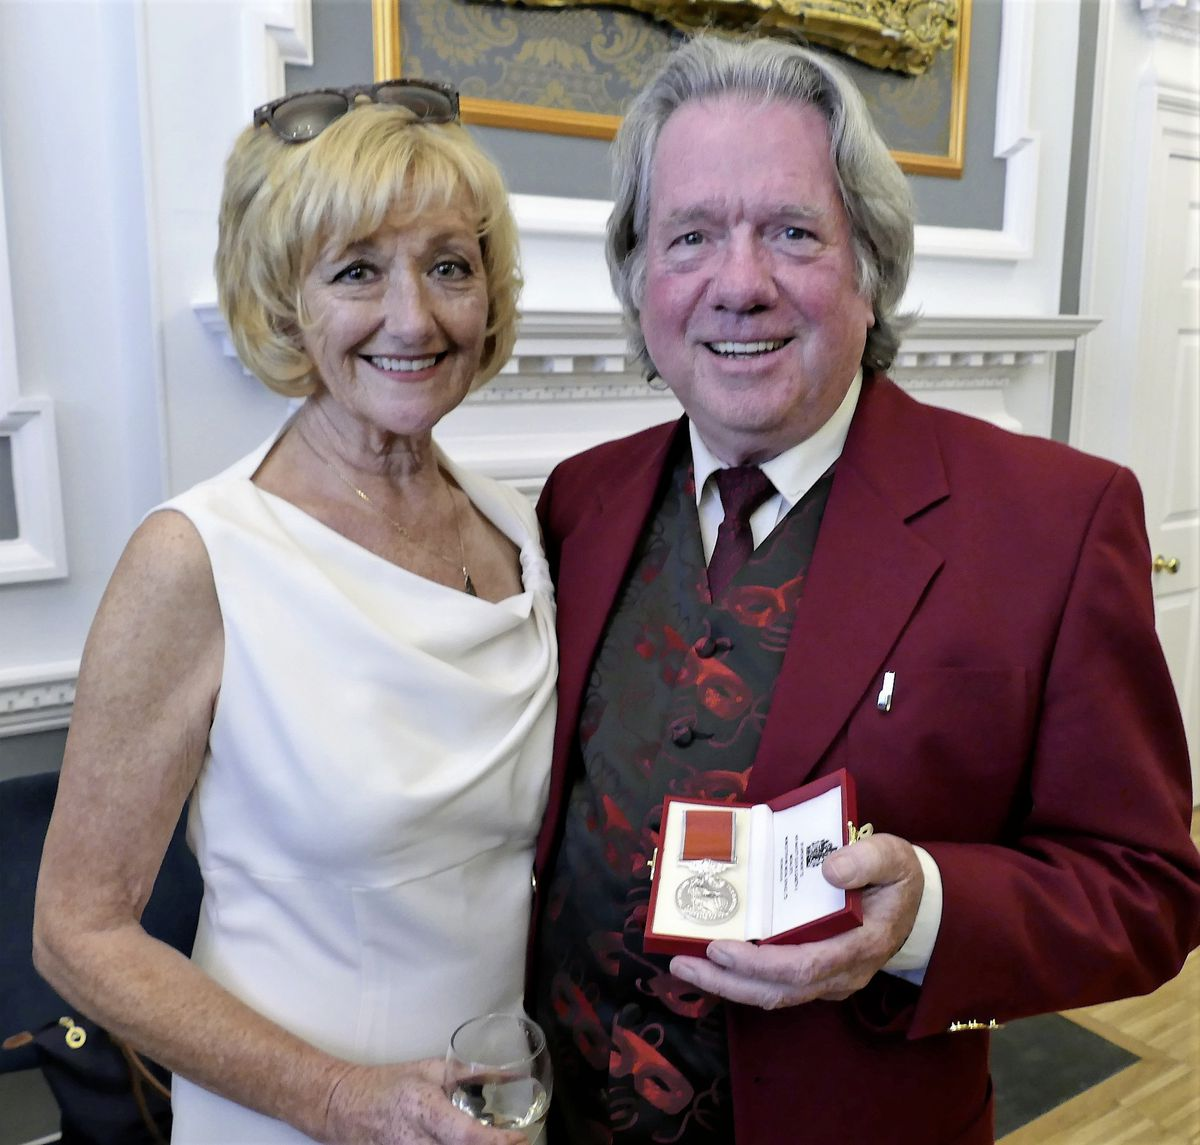 Ronnie Cairnduff and his wife, Lesley.